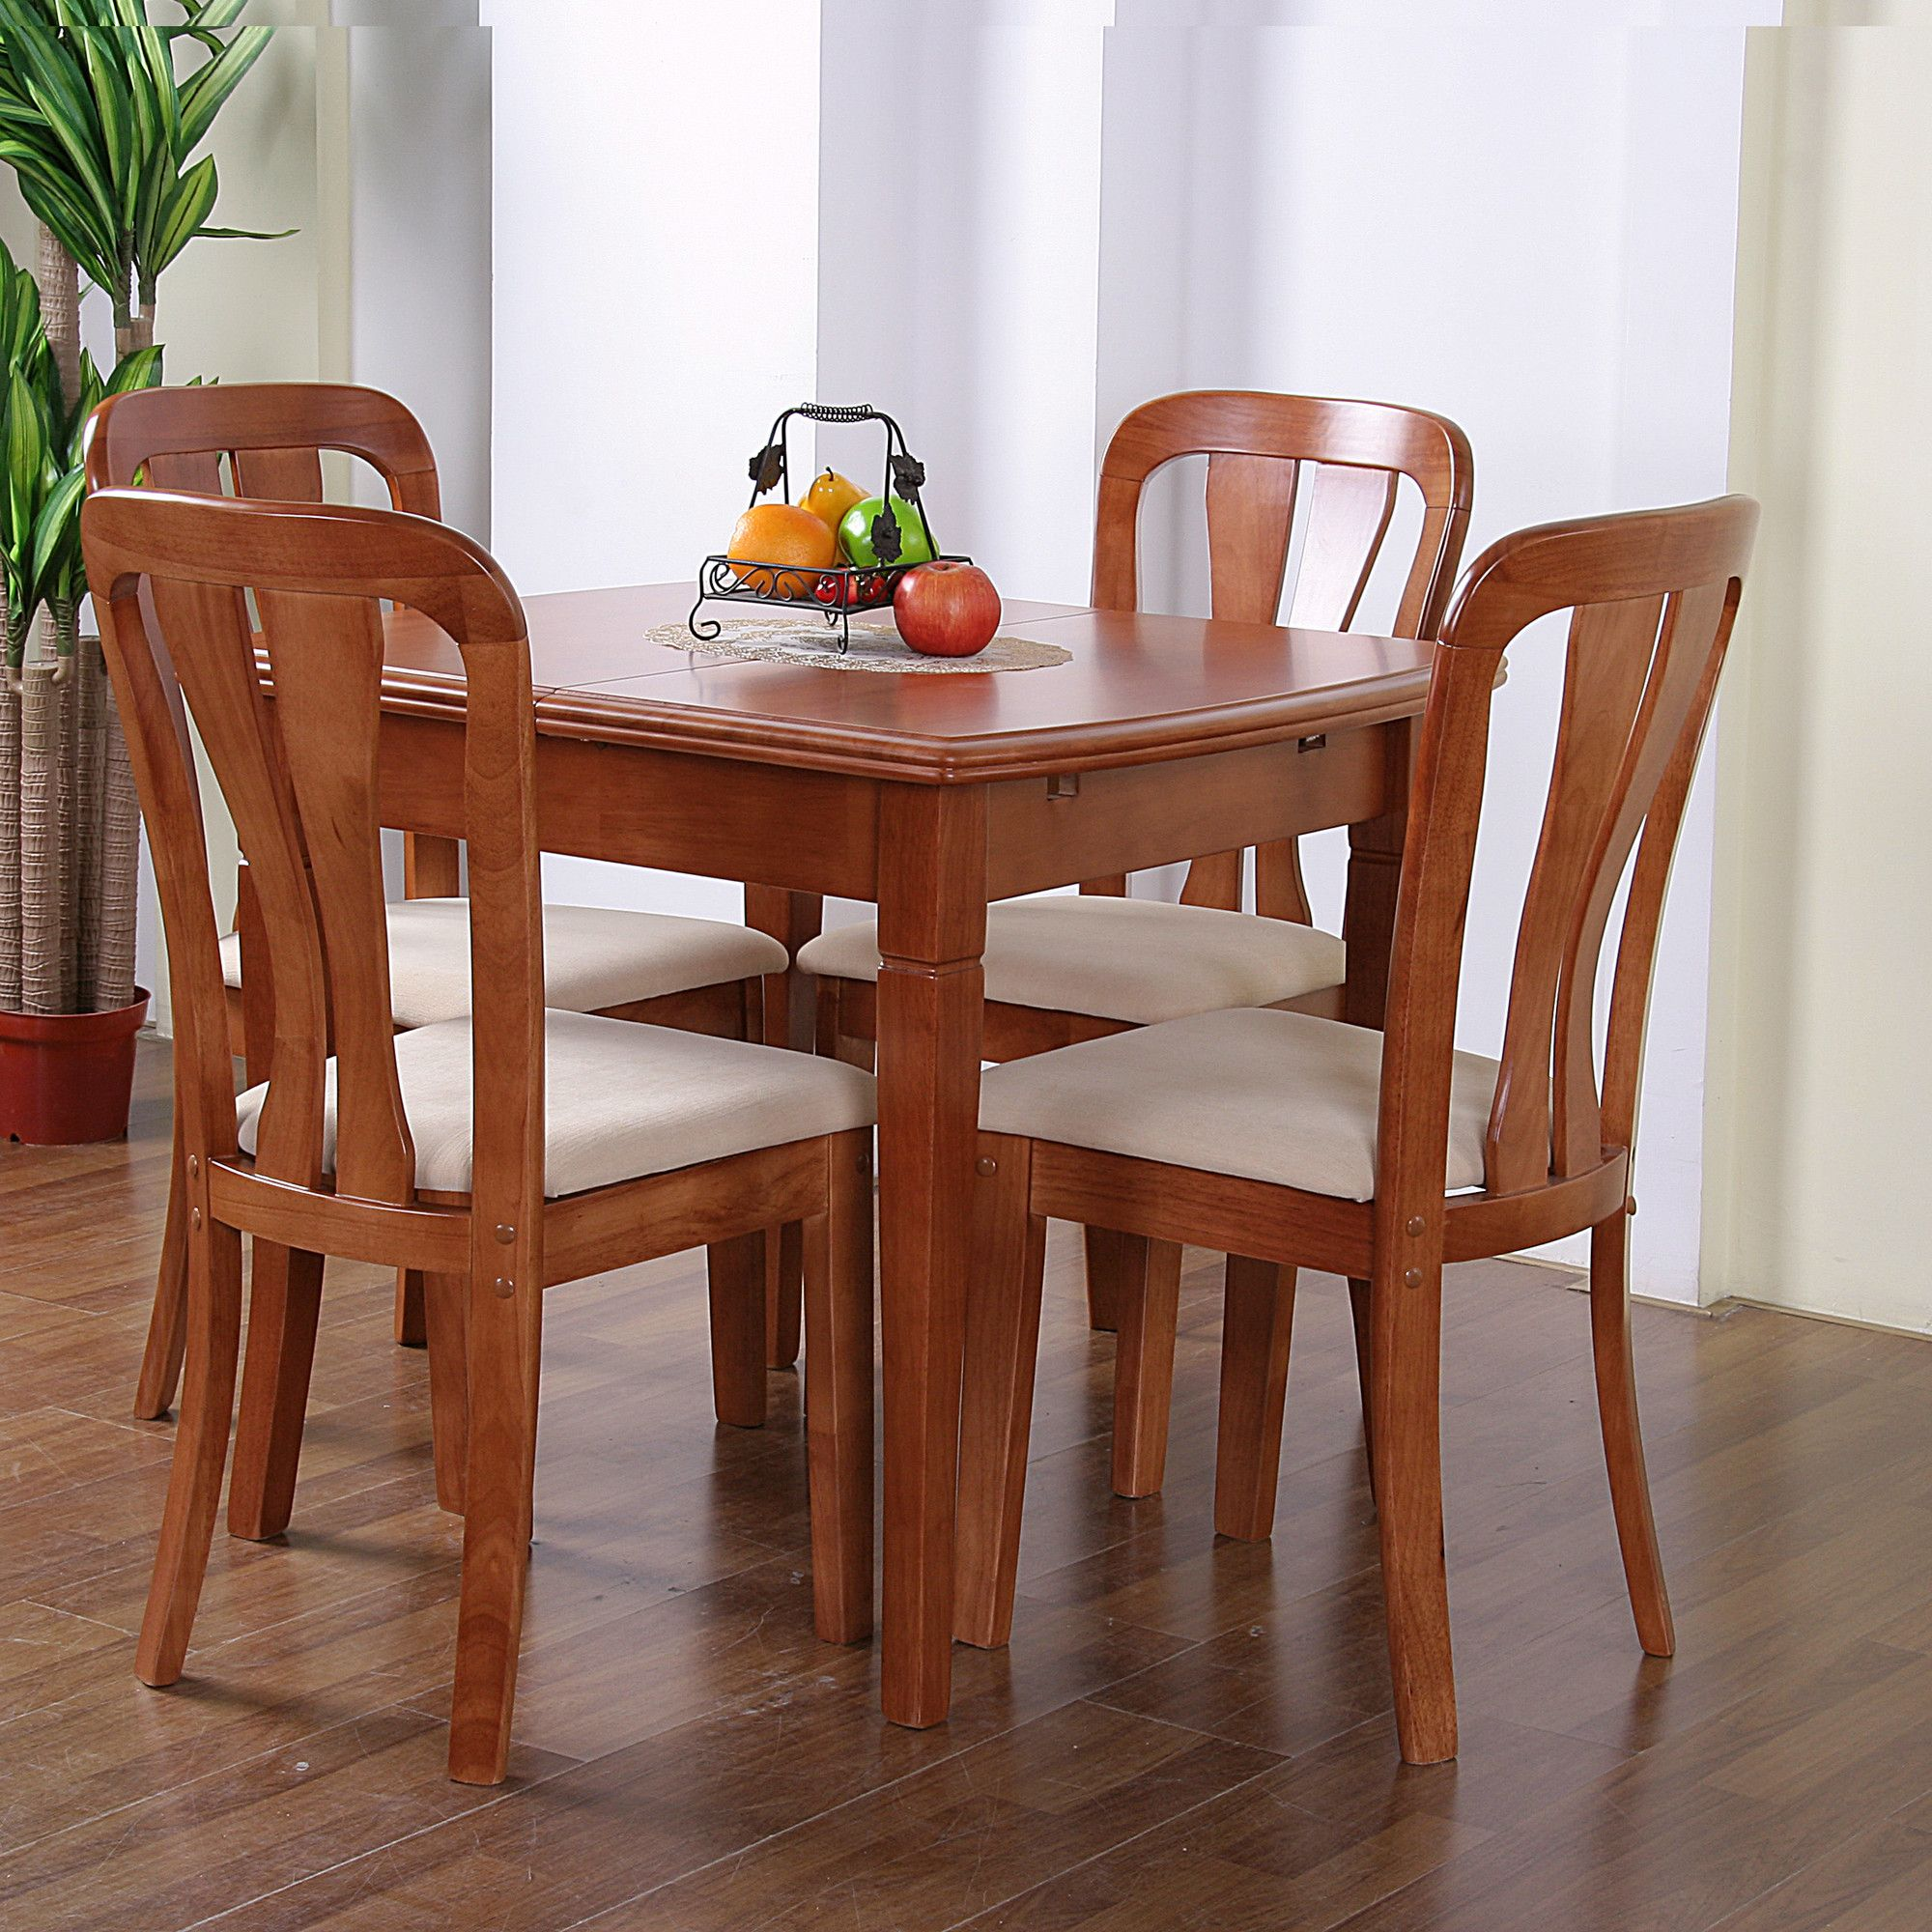 G&P Furniture Windsor House 5-Piece Lincoln Extending Dining Set with Slatted Back Chair - Cherry at Tesco Direct